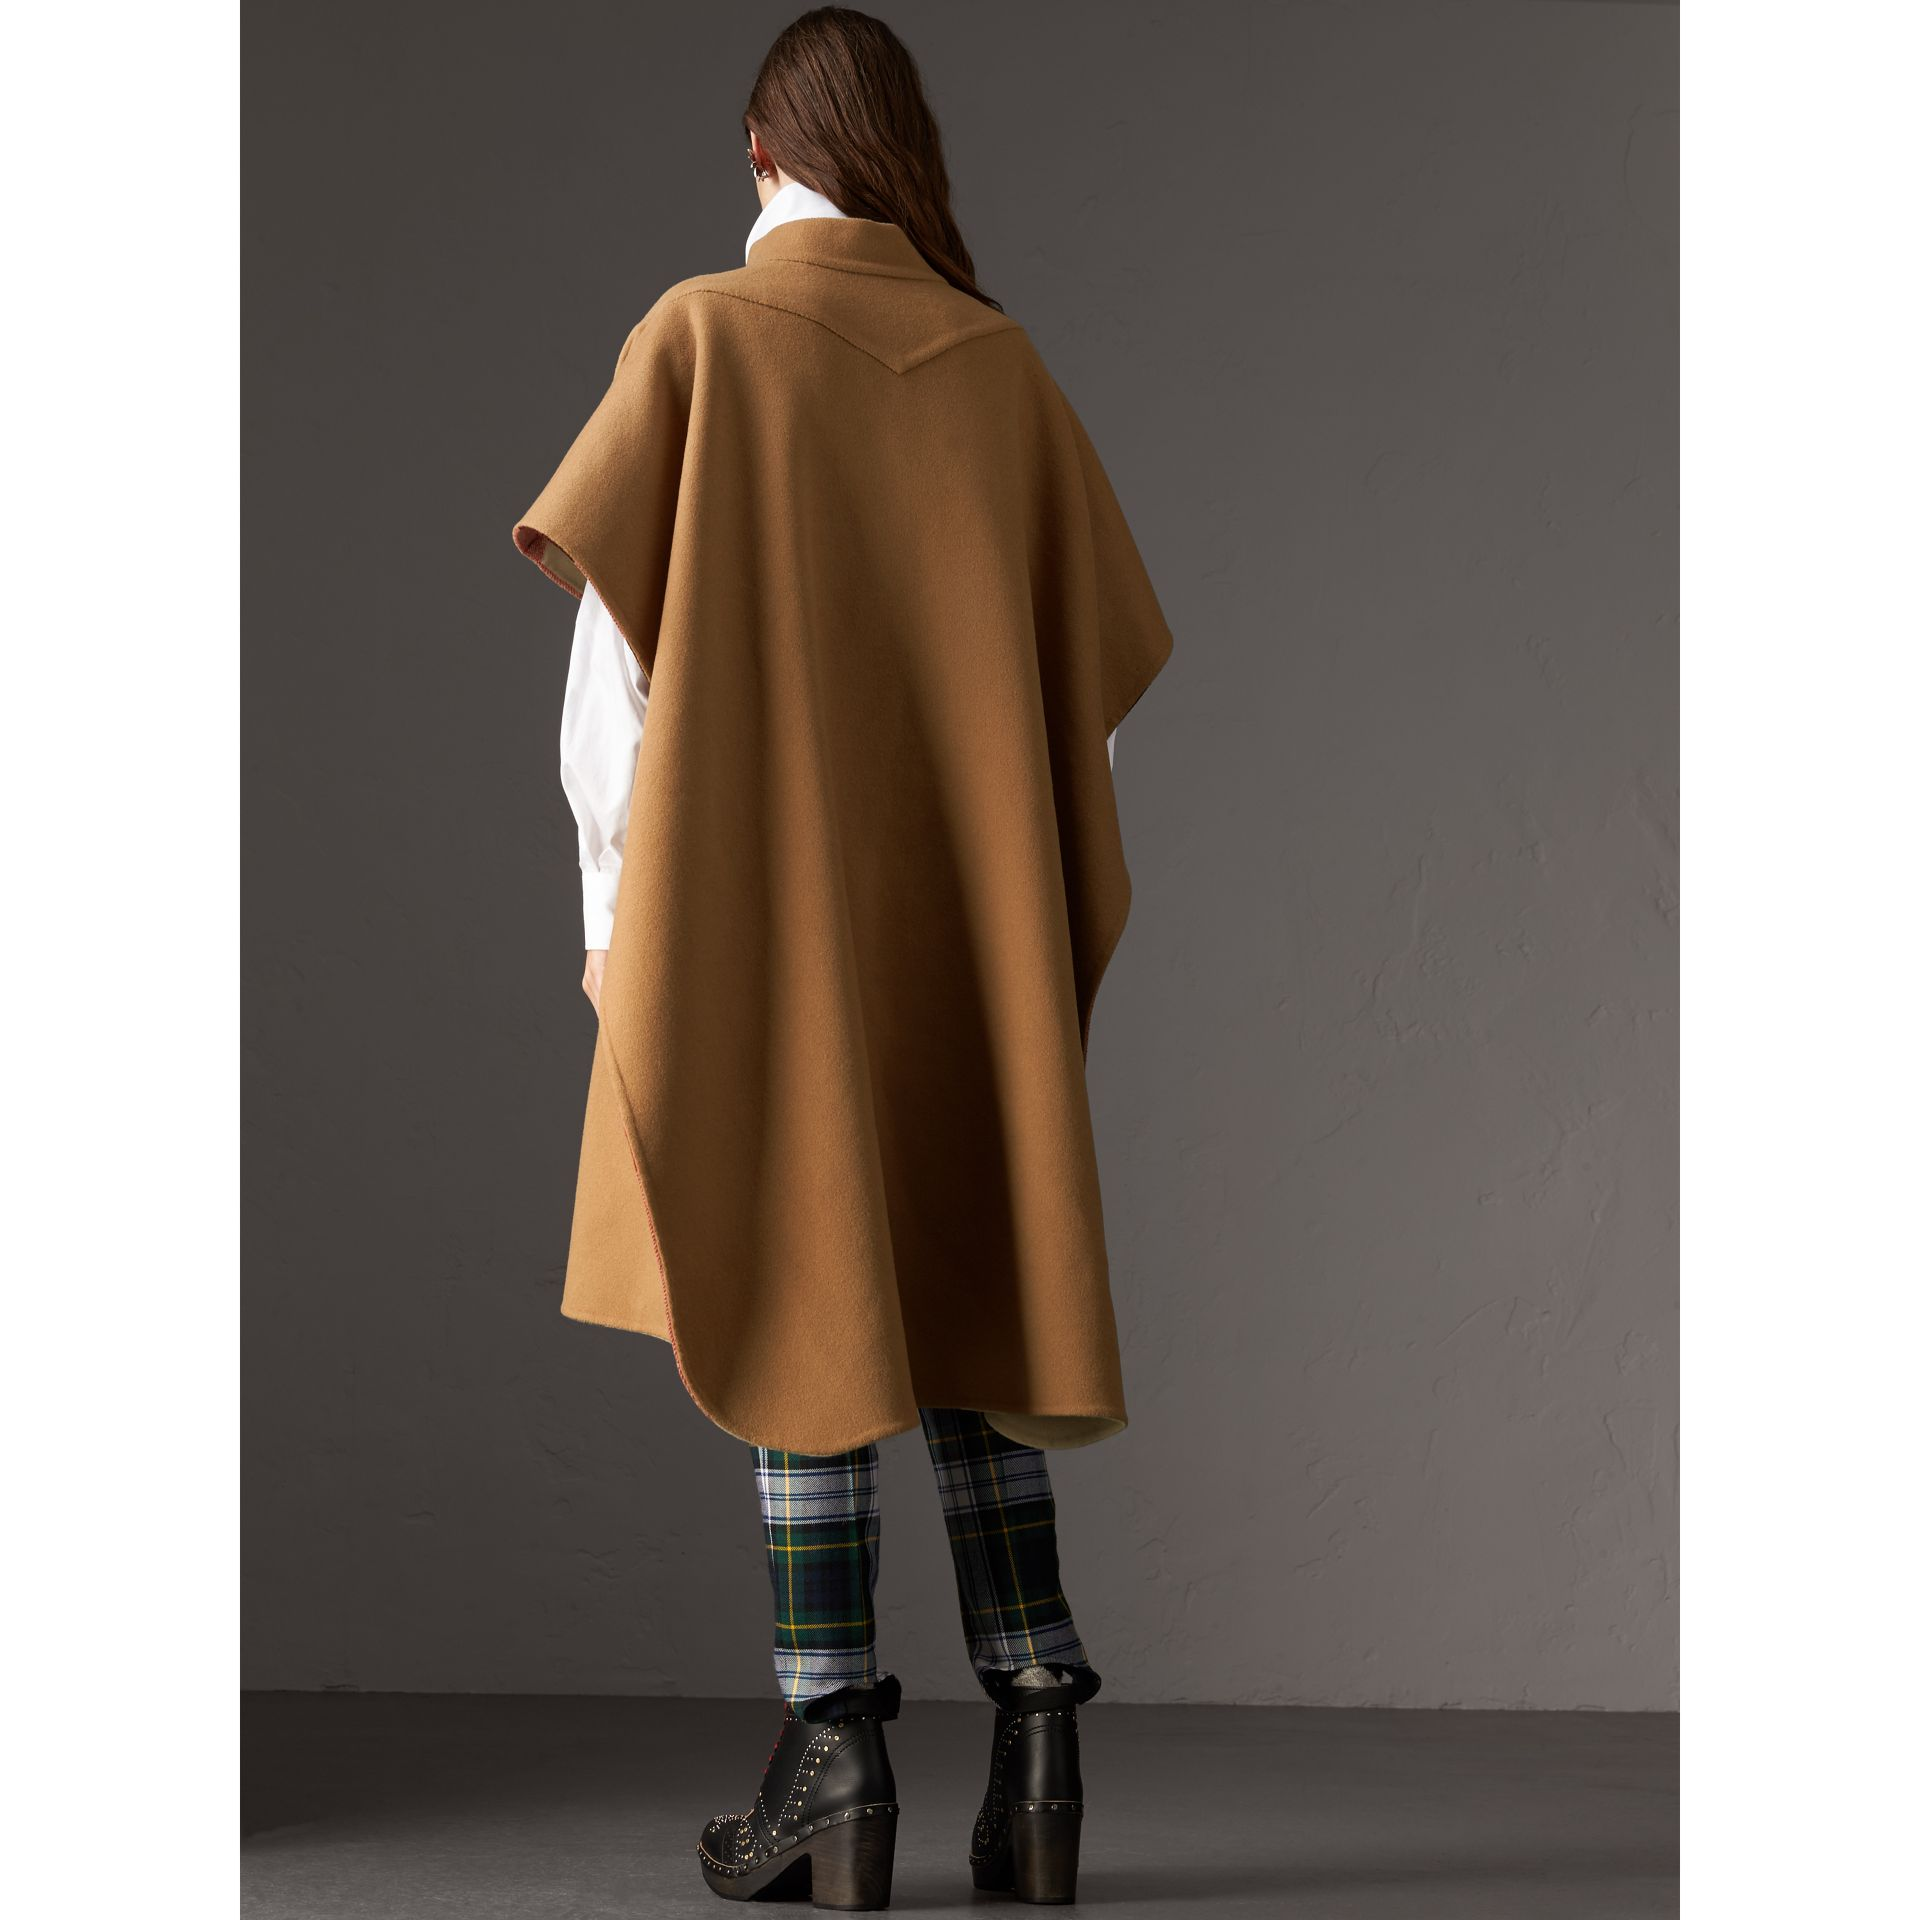 Reversible Check Oversized Poncho in Camel - Women | Burberry United States - gallery image 2